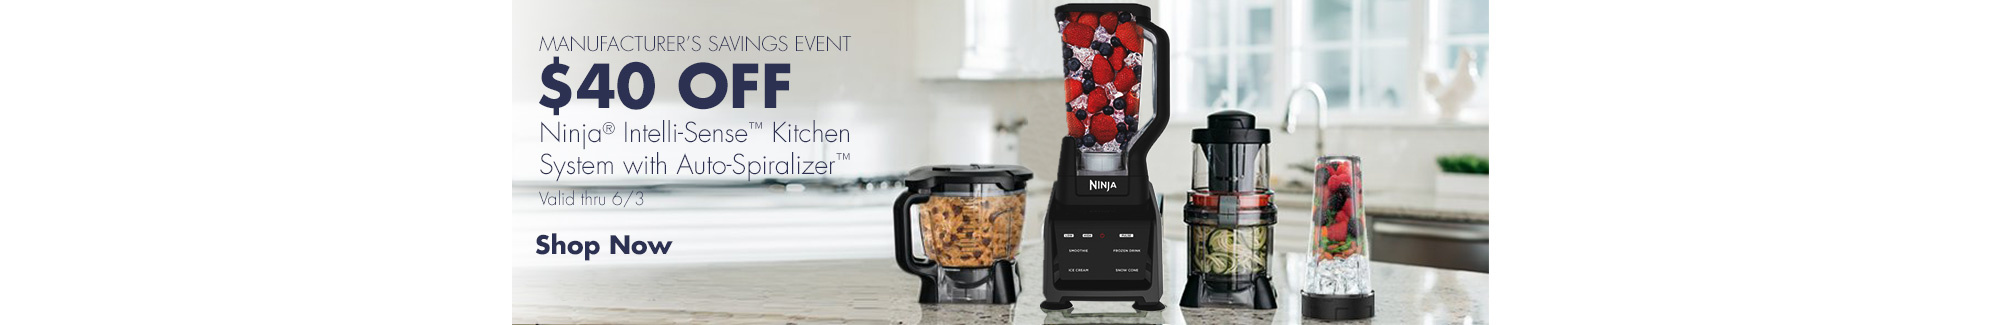 $40 Off Ninja Intelli-Sense Kitchen System. Valid thru 6/3